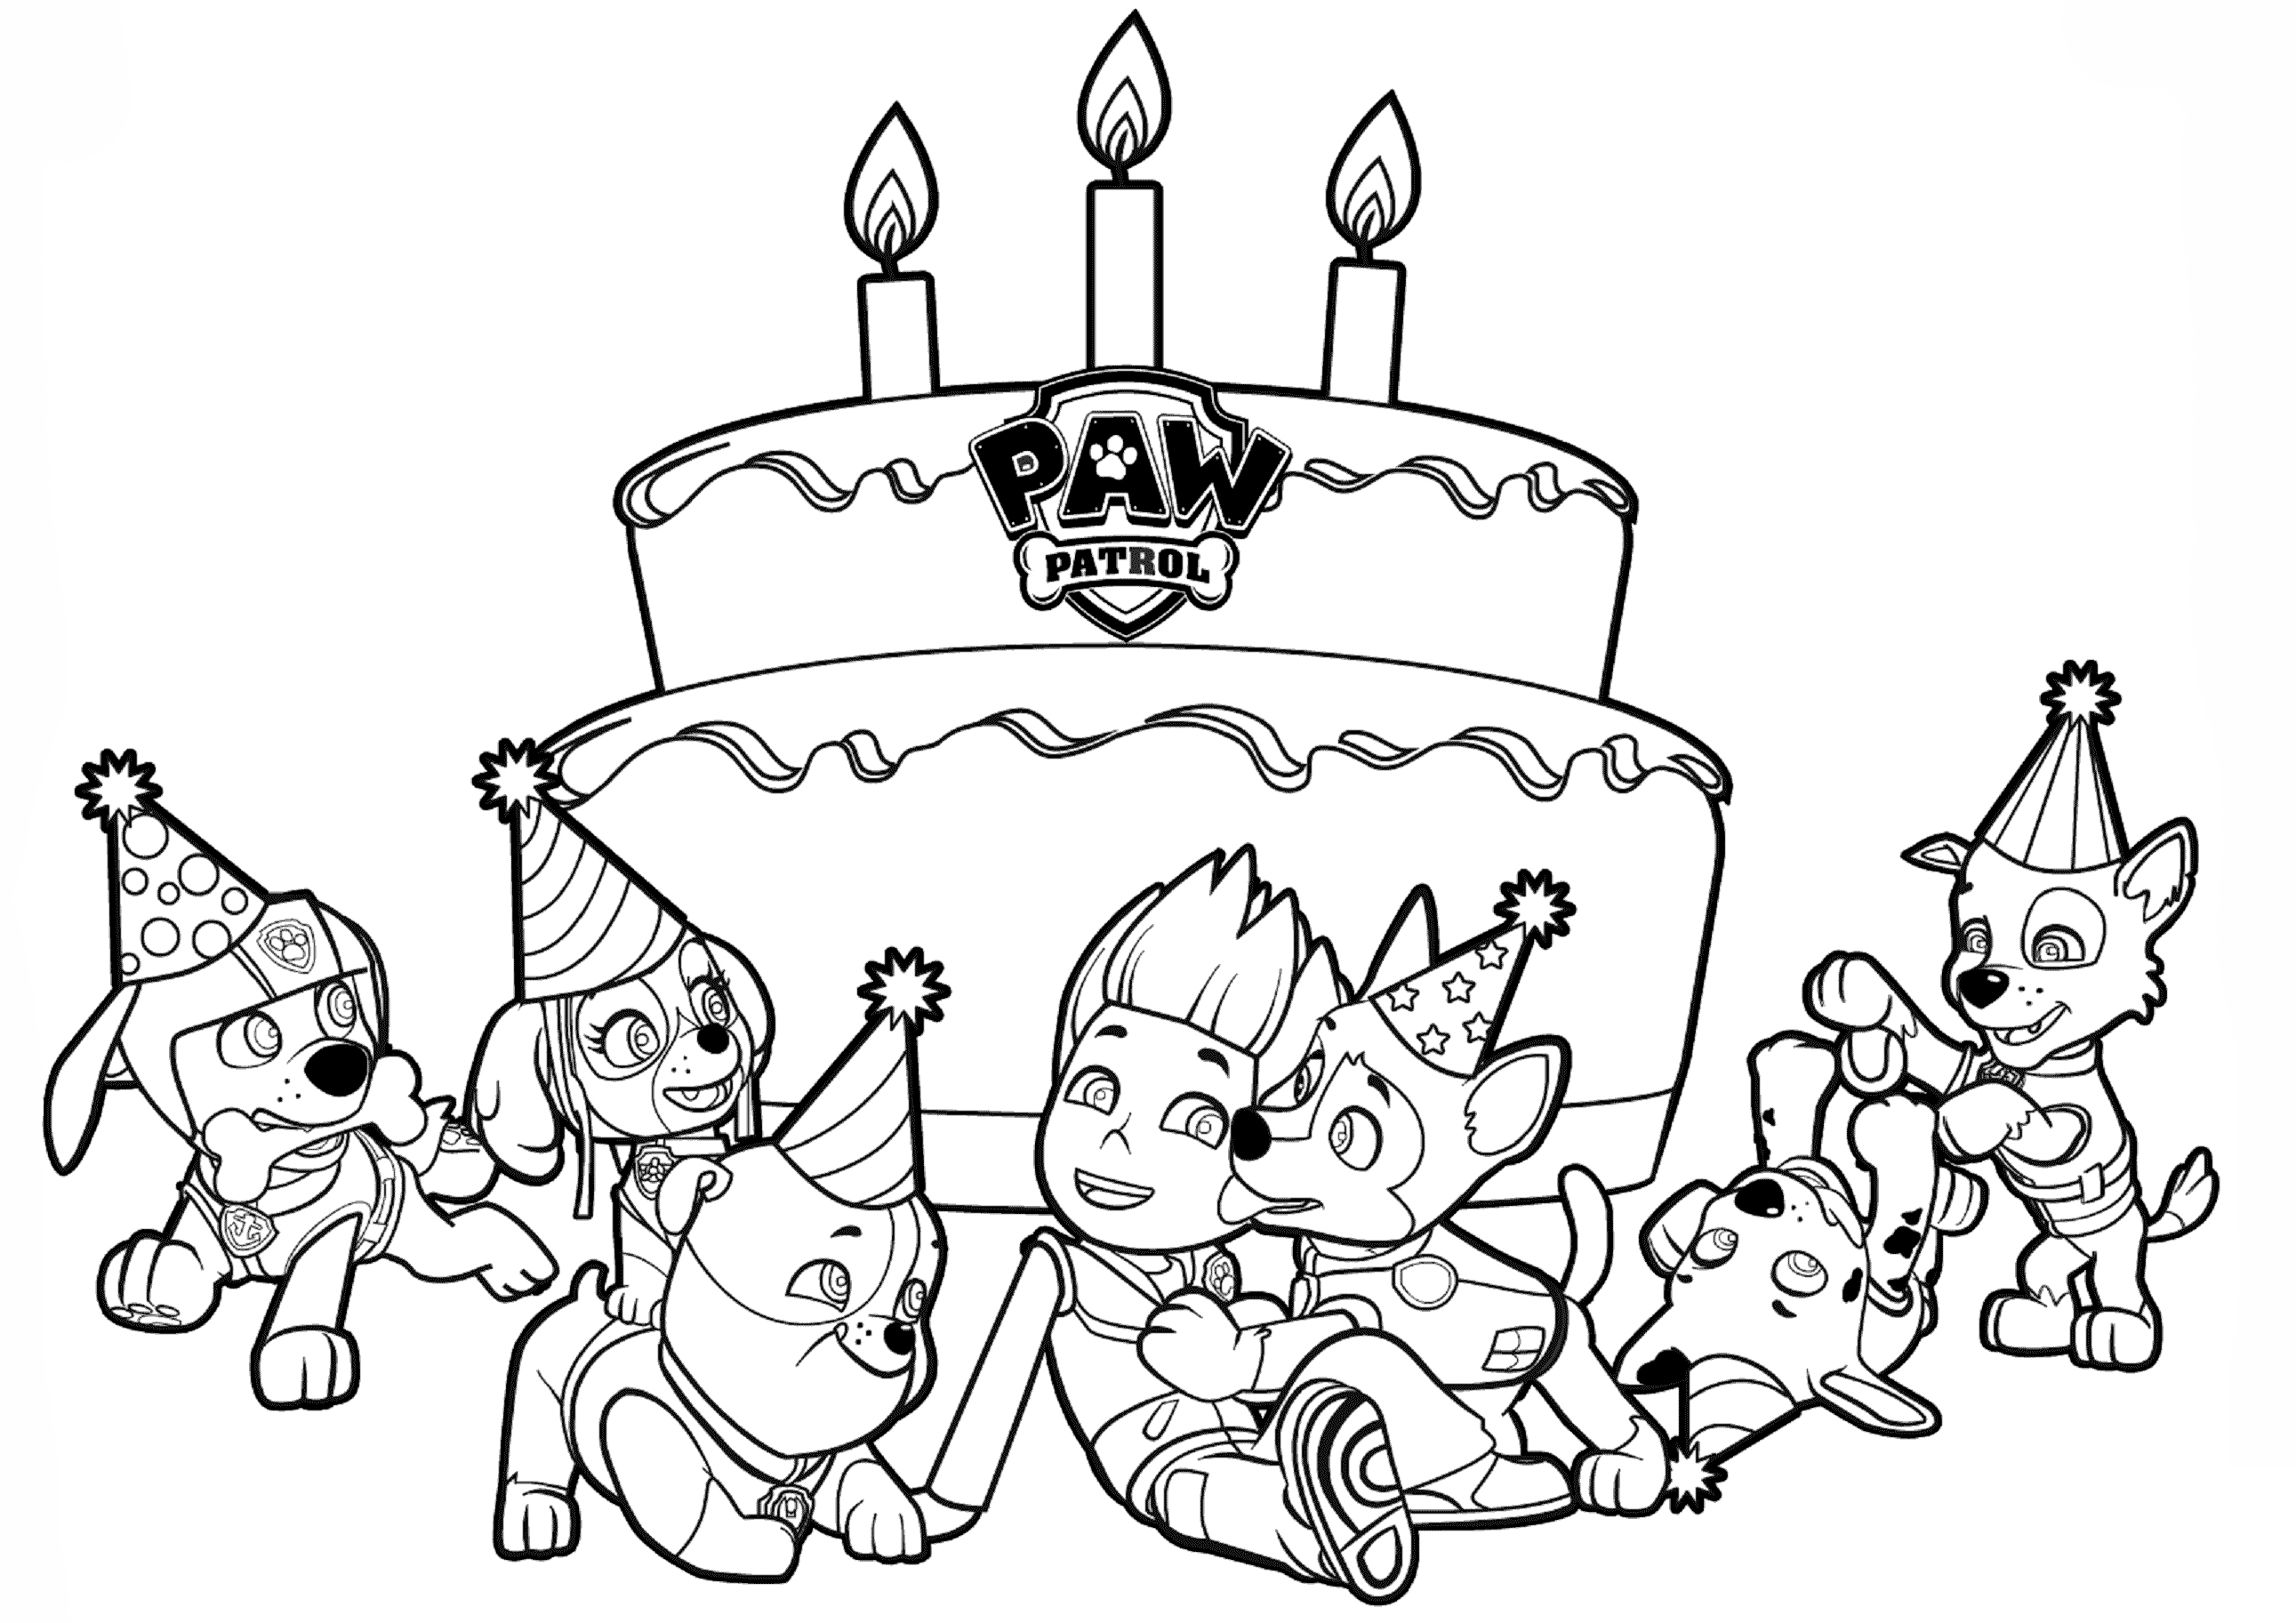 paw patrol birthday coloring pages - photo#9